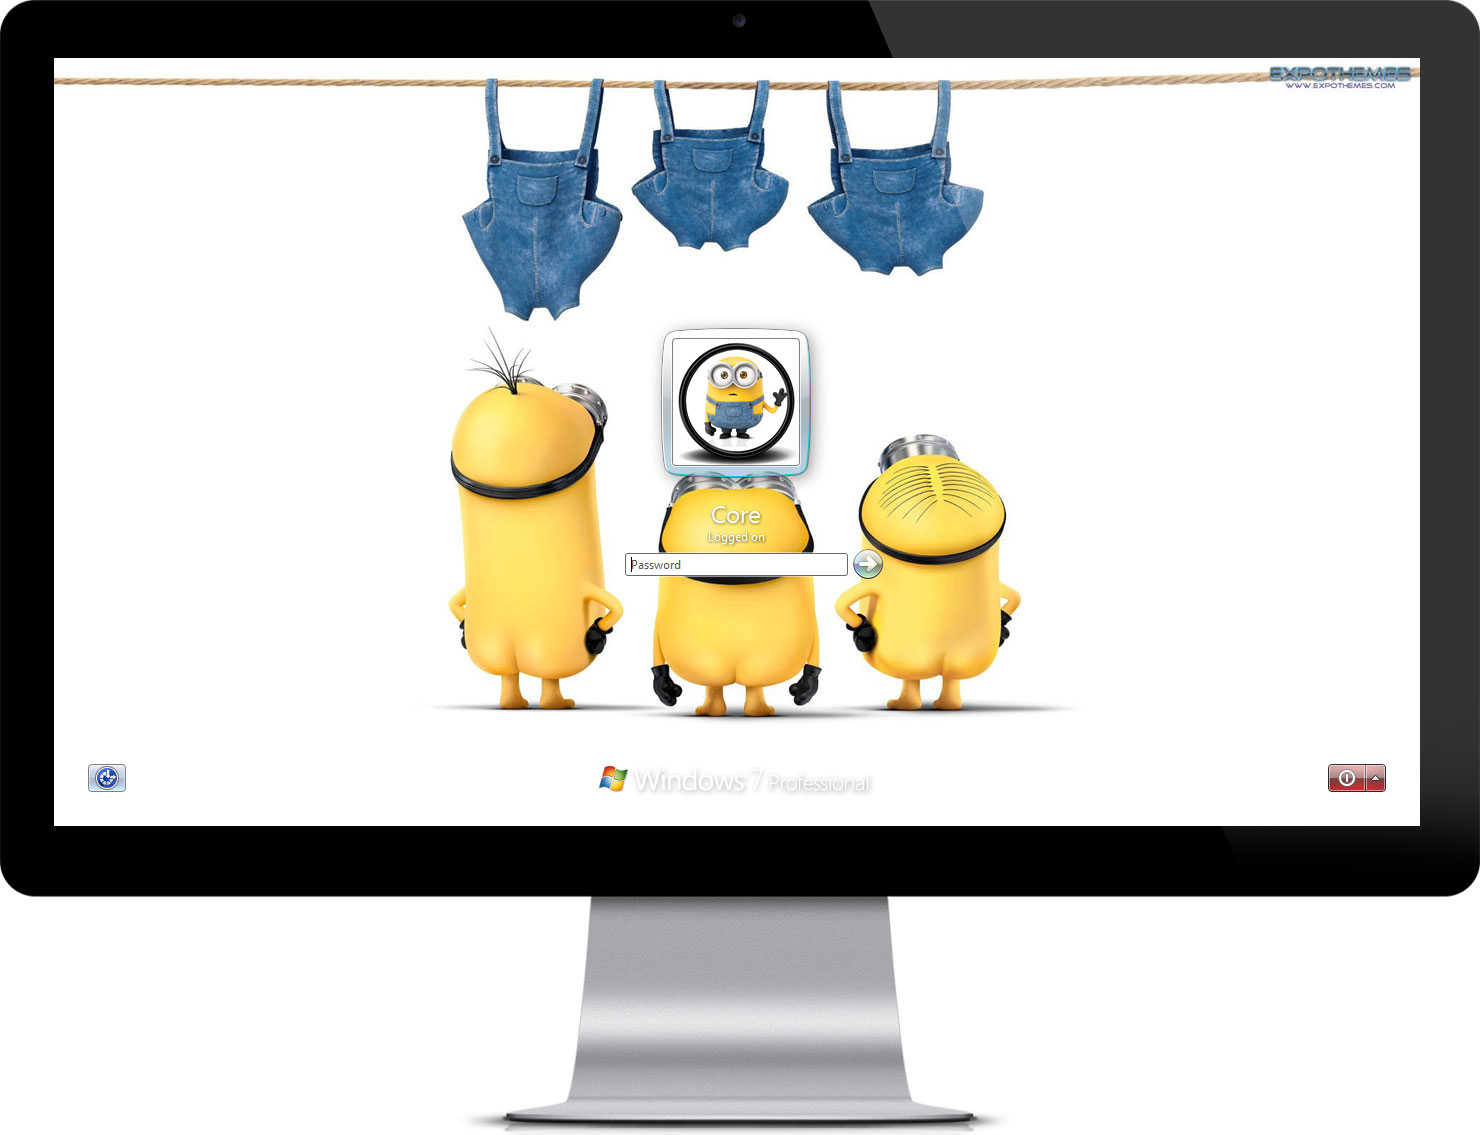 Google themes minions - With Minion Wallpapers Logon Screen Wallpaper Automatically Change